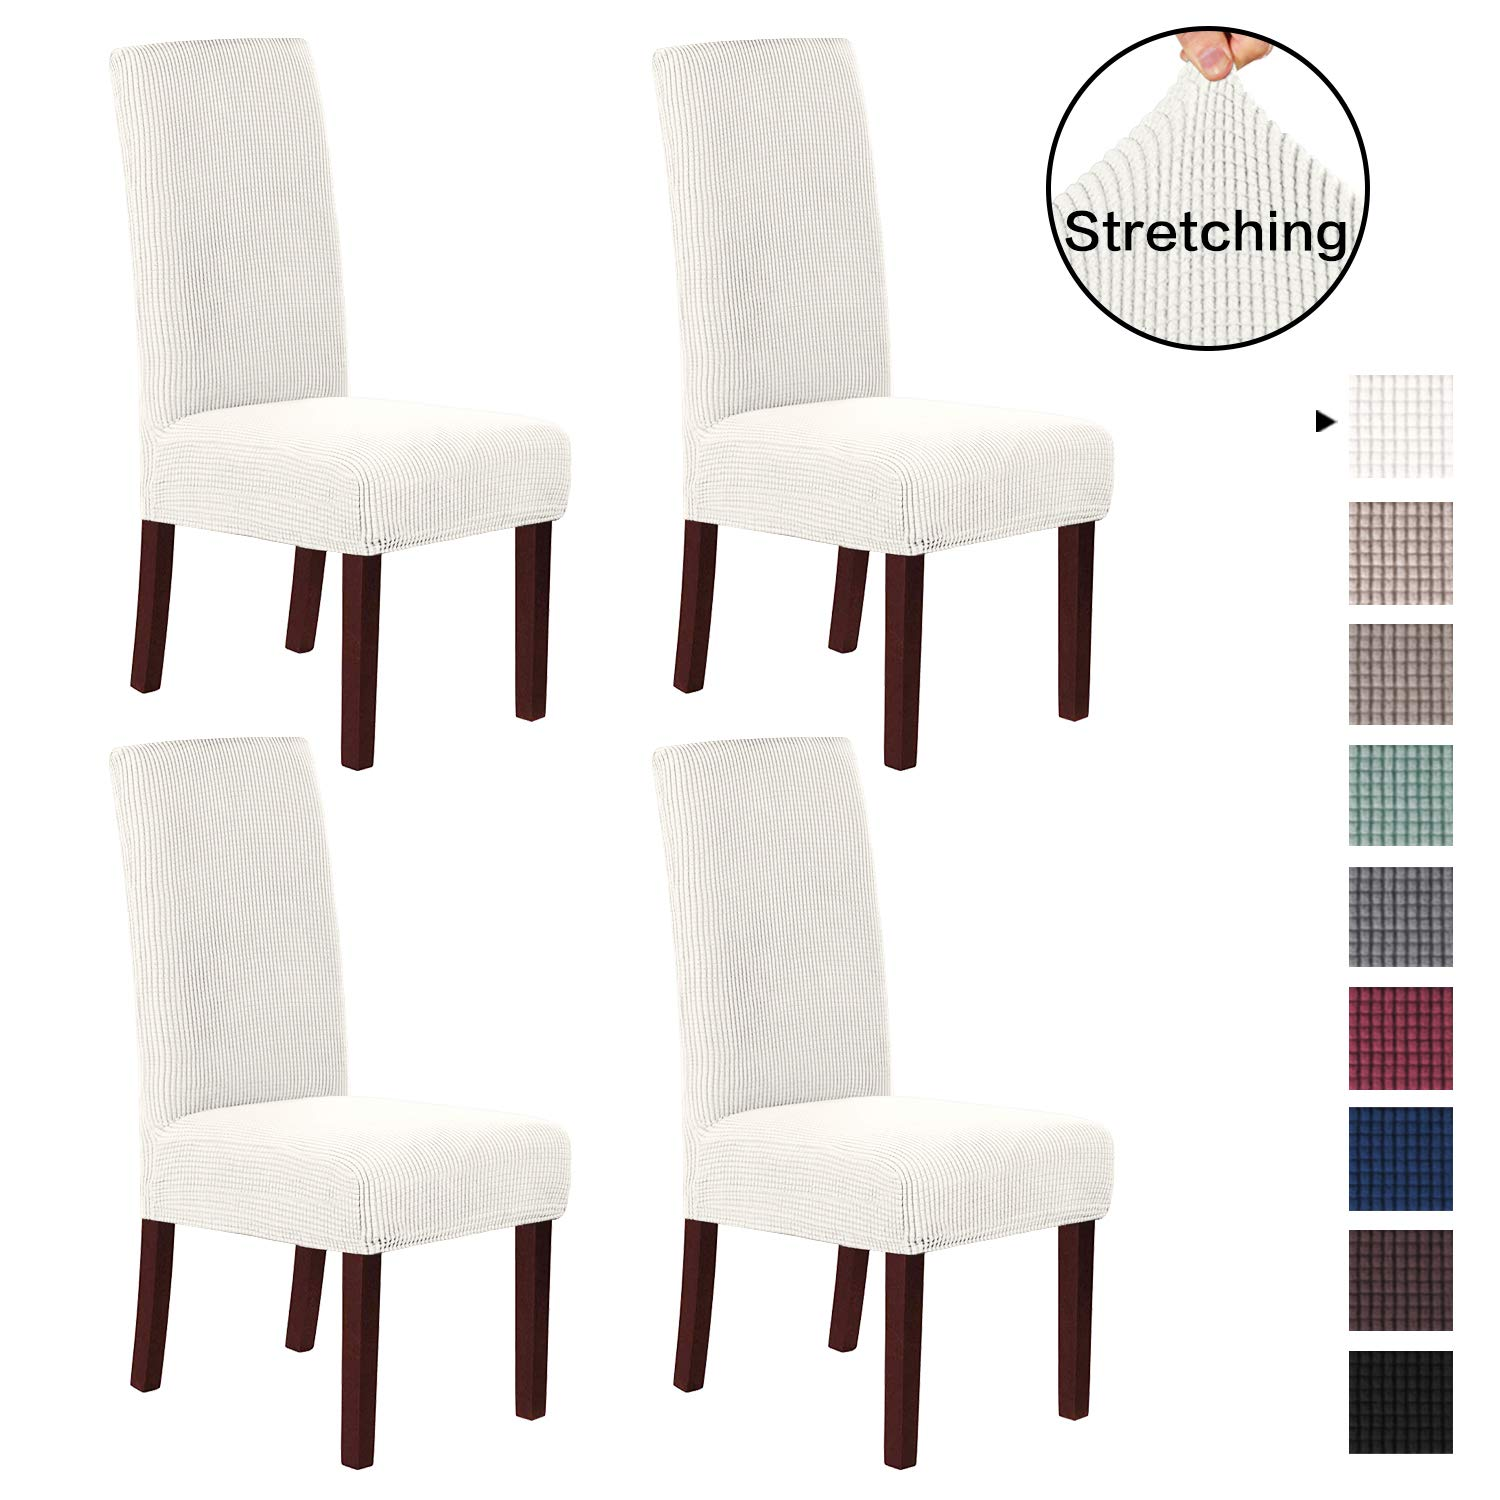 H.VERSAILTEX Dining Chair Covers High Back (Set of 4) Stretch Dining Room Chair Slipcovers Sets, Stretch Chair Furniture Protector Covers Removable Washable with Elastic Bottom, Ivory White